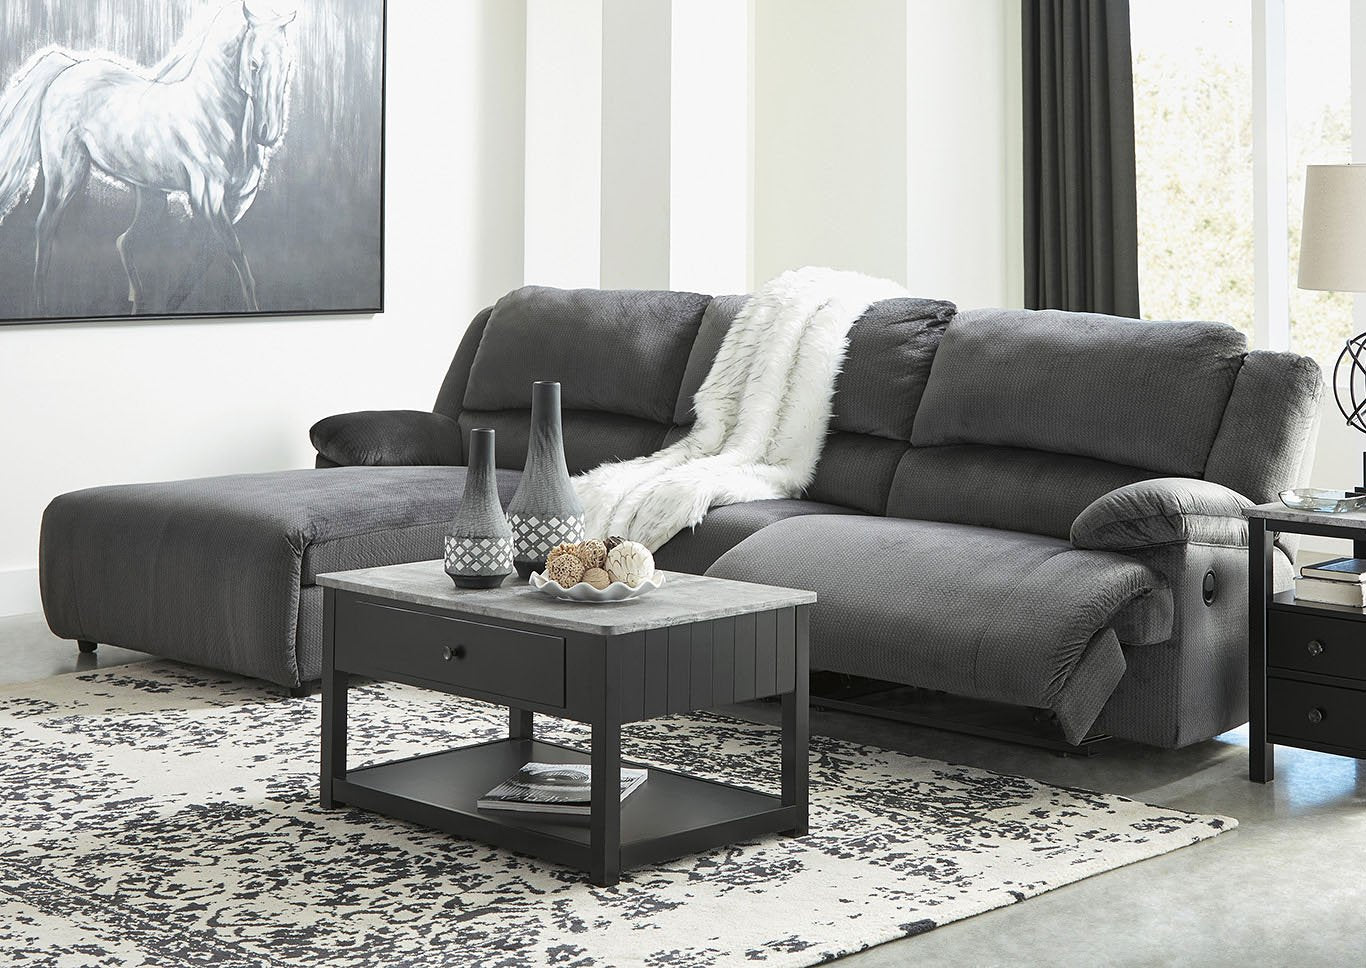 Clonmel Signature Design by Ashley 3-Piece Power Reclining Sectional with Chaise image